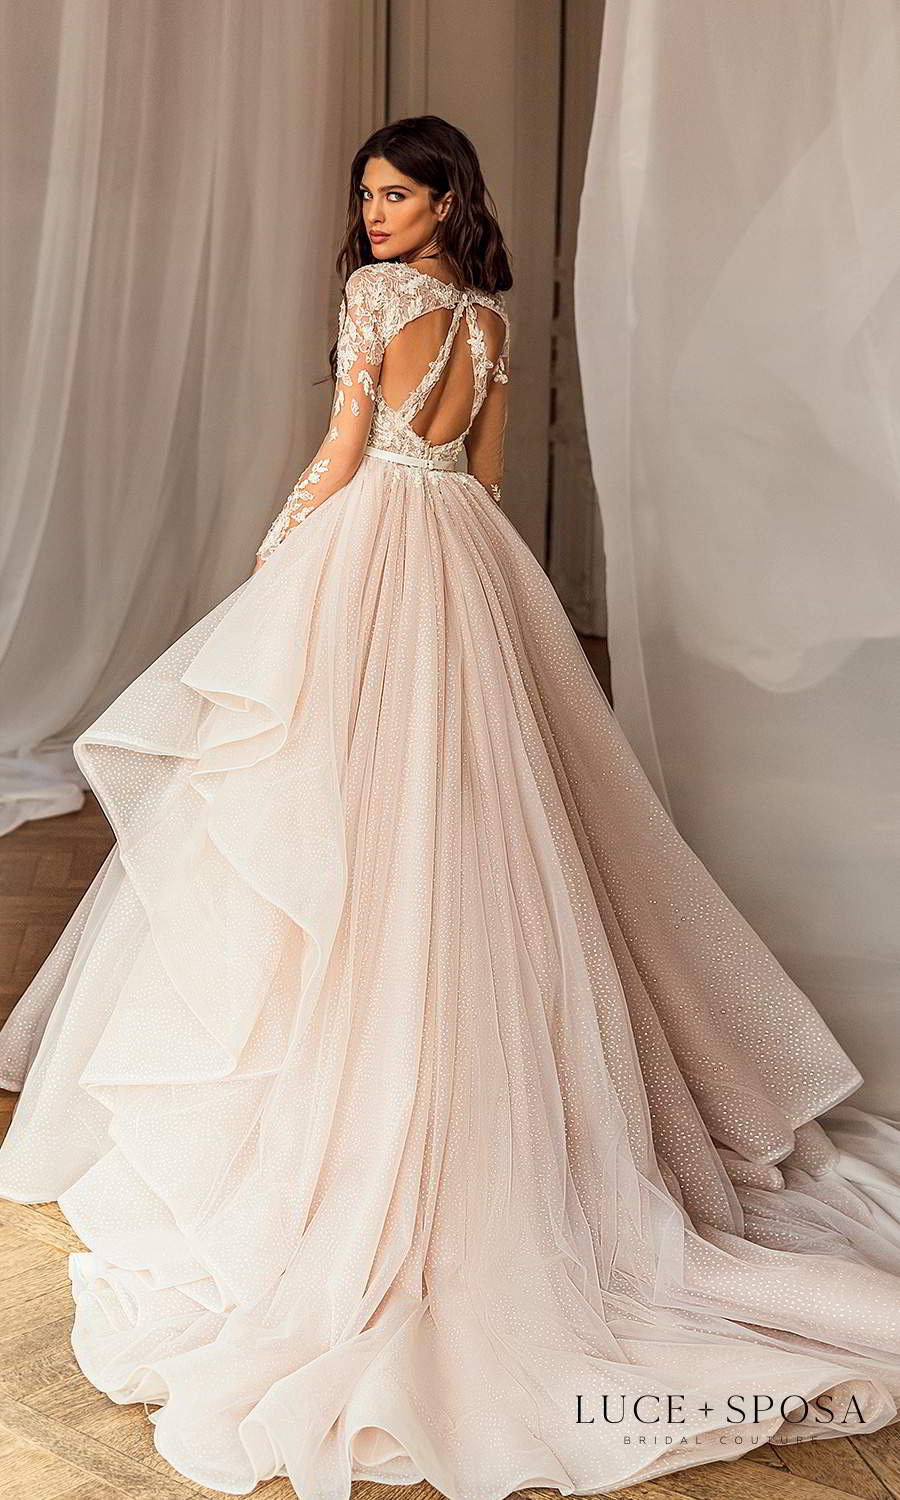 luce sposa 2021 shades of couture bridal long sleeves bateau neckline heavily embellished lace bodice a line ball gown wedding dress chapel train (julia) bv